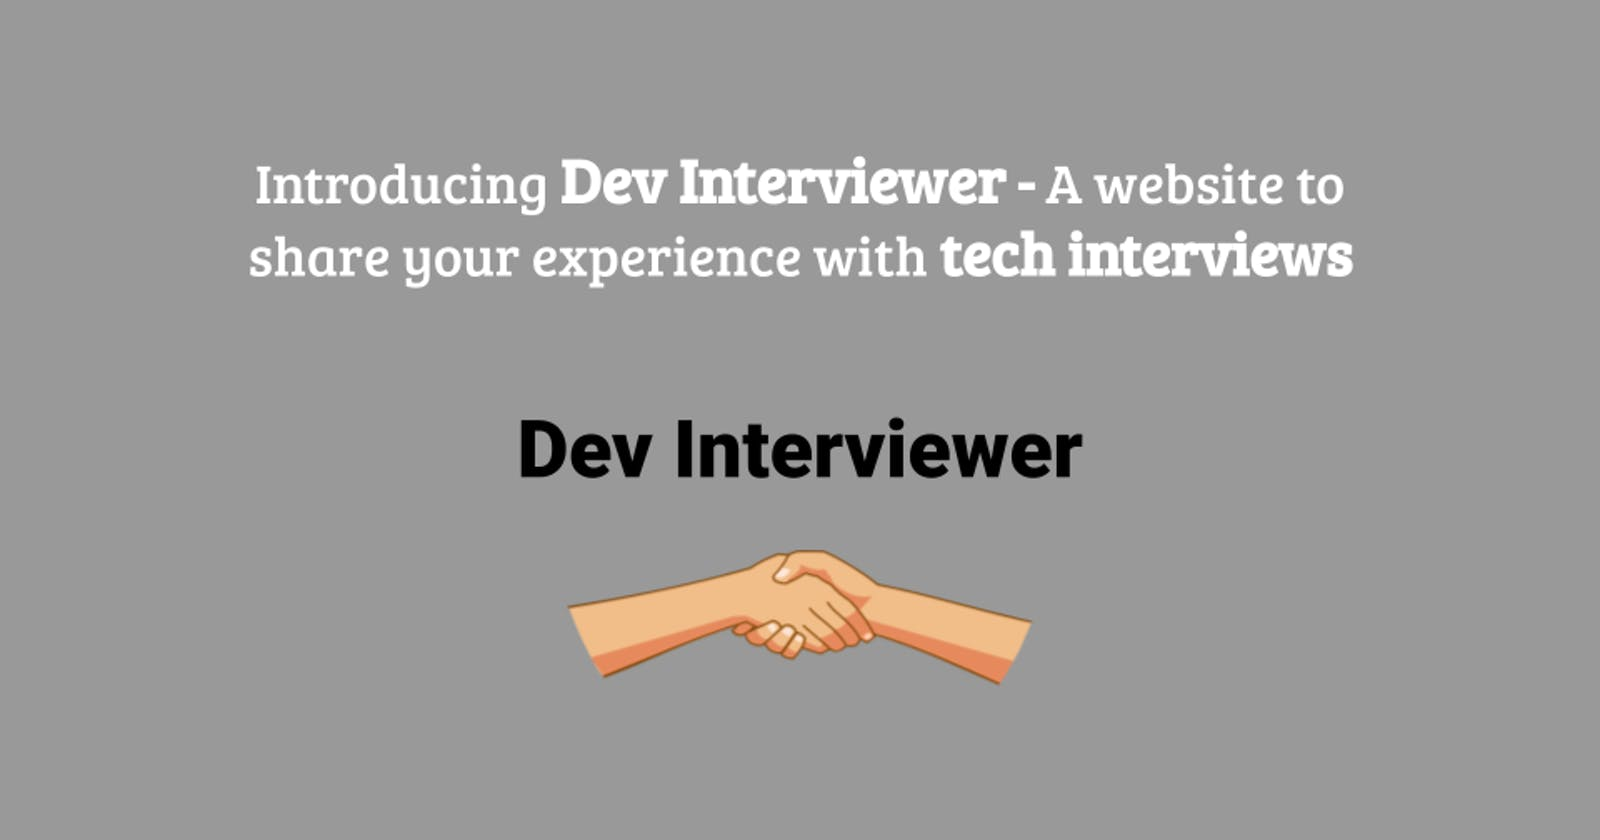 Introducing Dev Interviewer - A website to share your experience with tech interviews